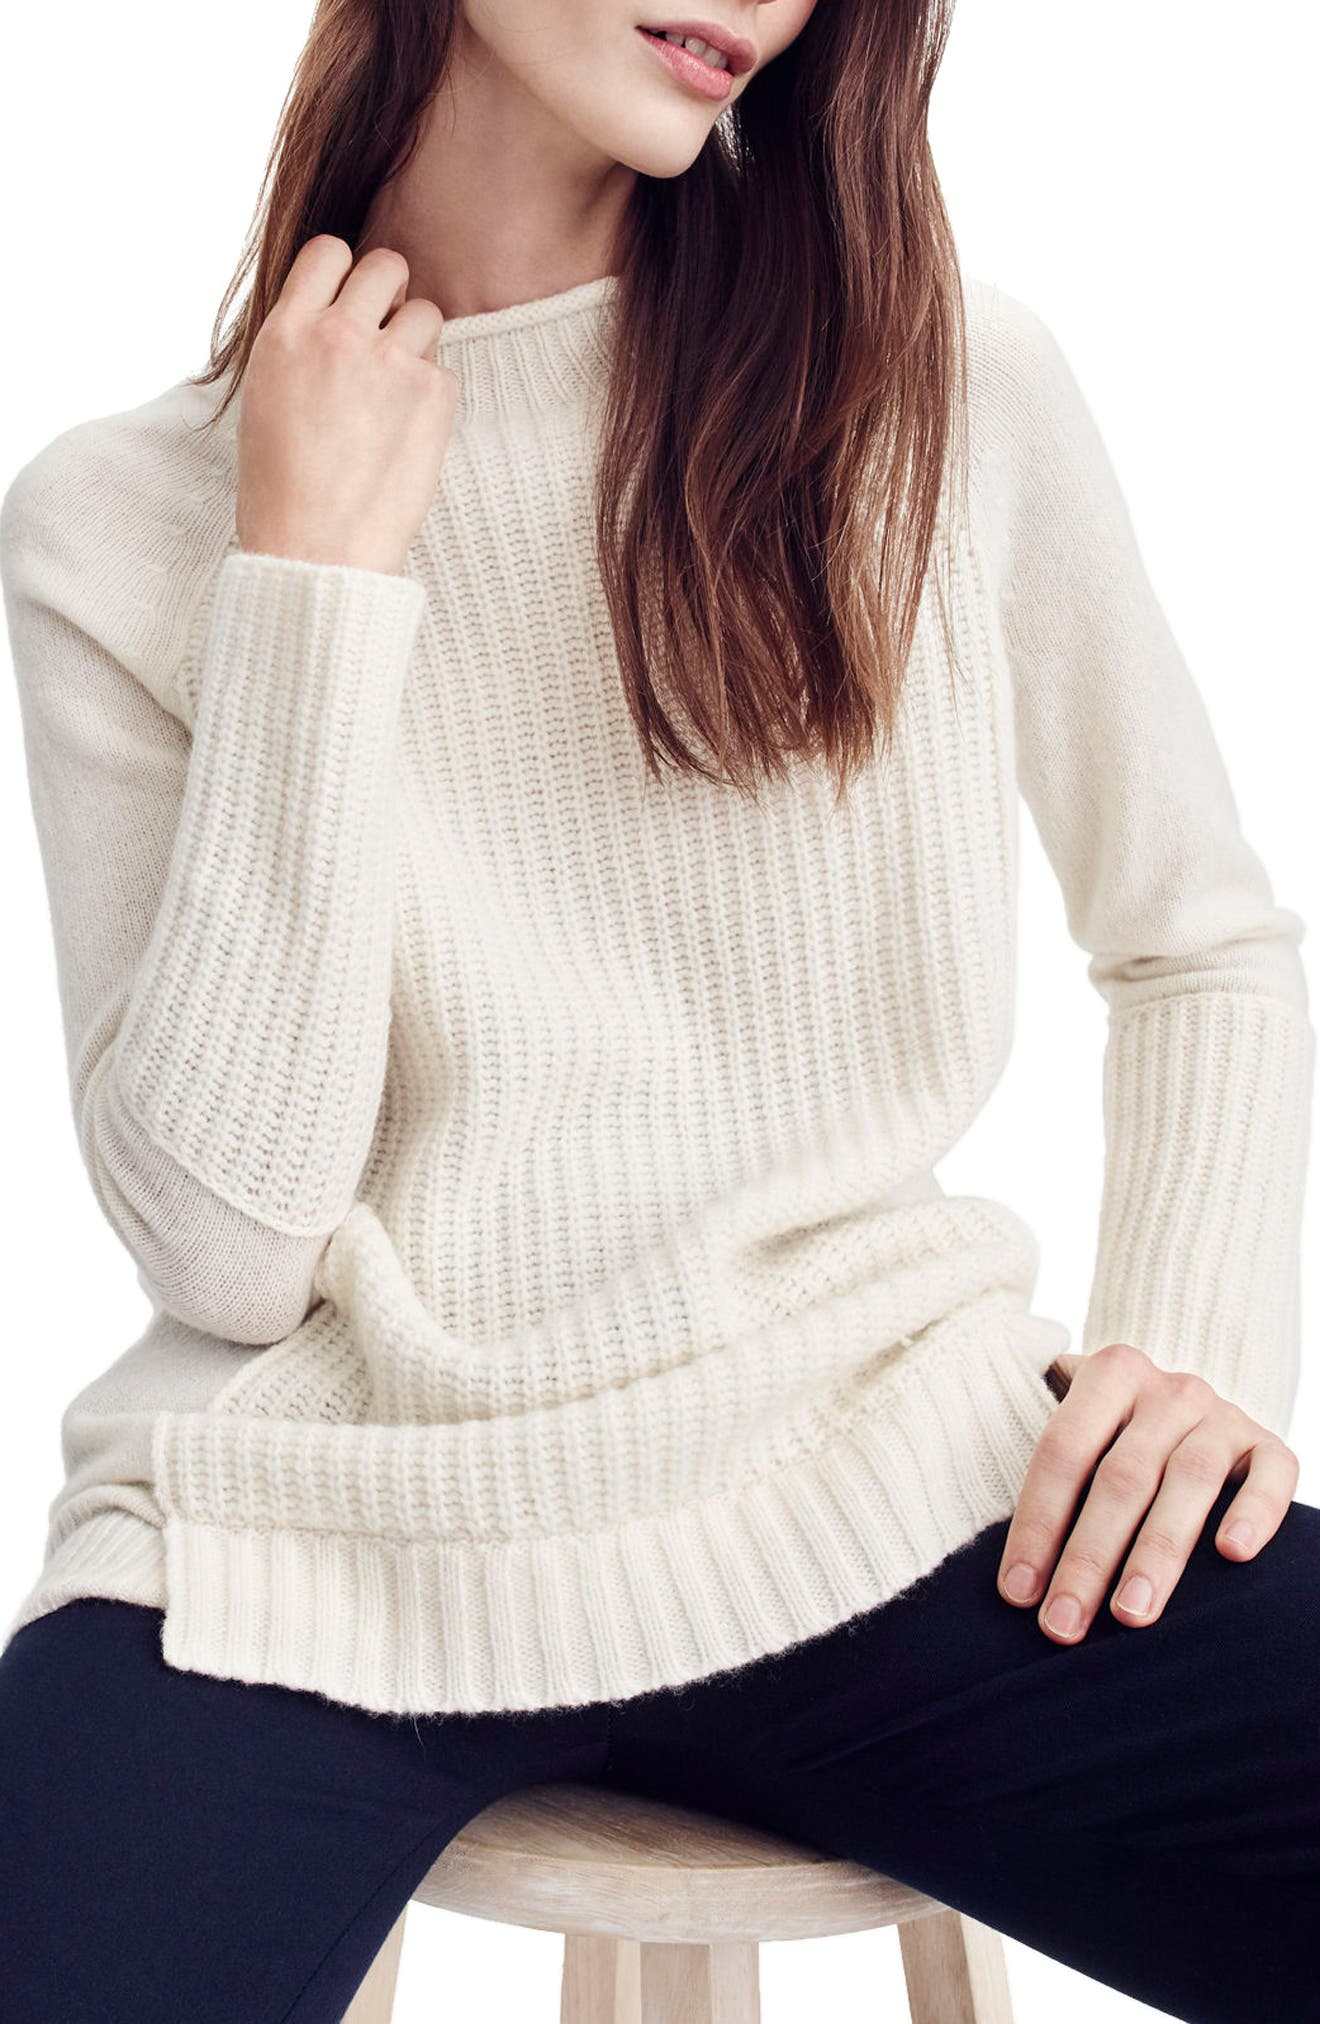 J.Crew New England Mock Neck Wool Tunic Sweater,                             Main thumbnail 1, color,                             Natural